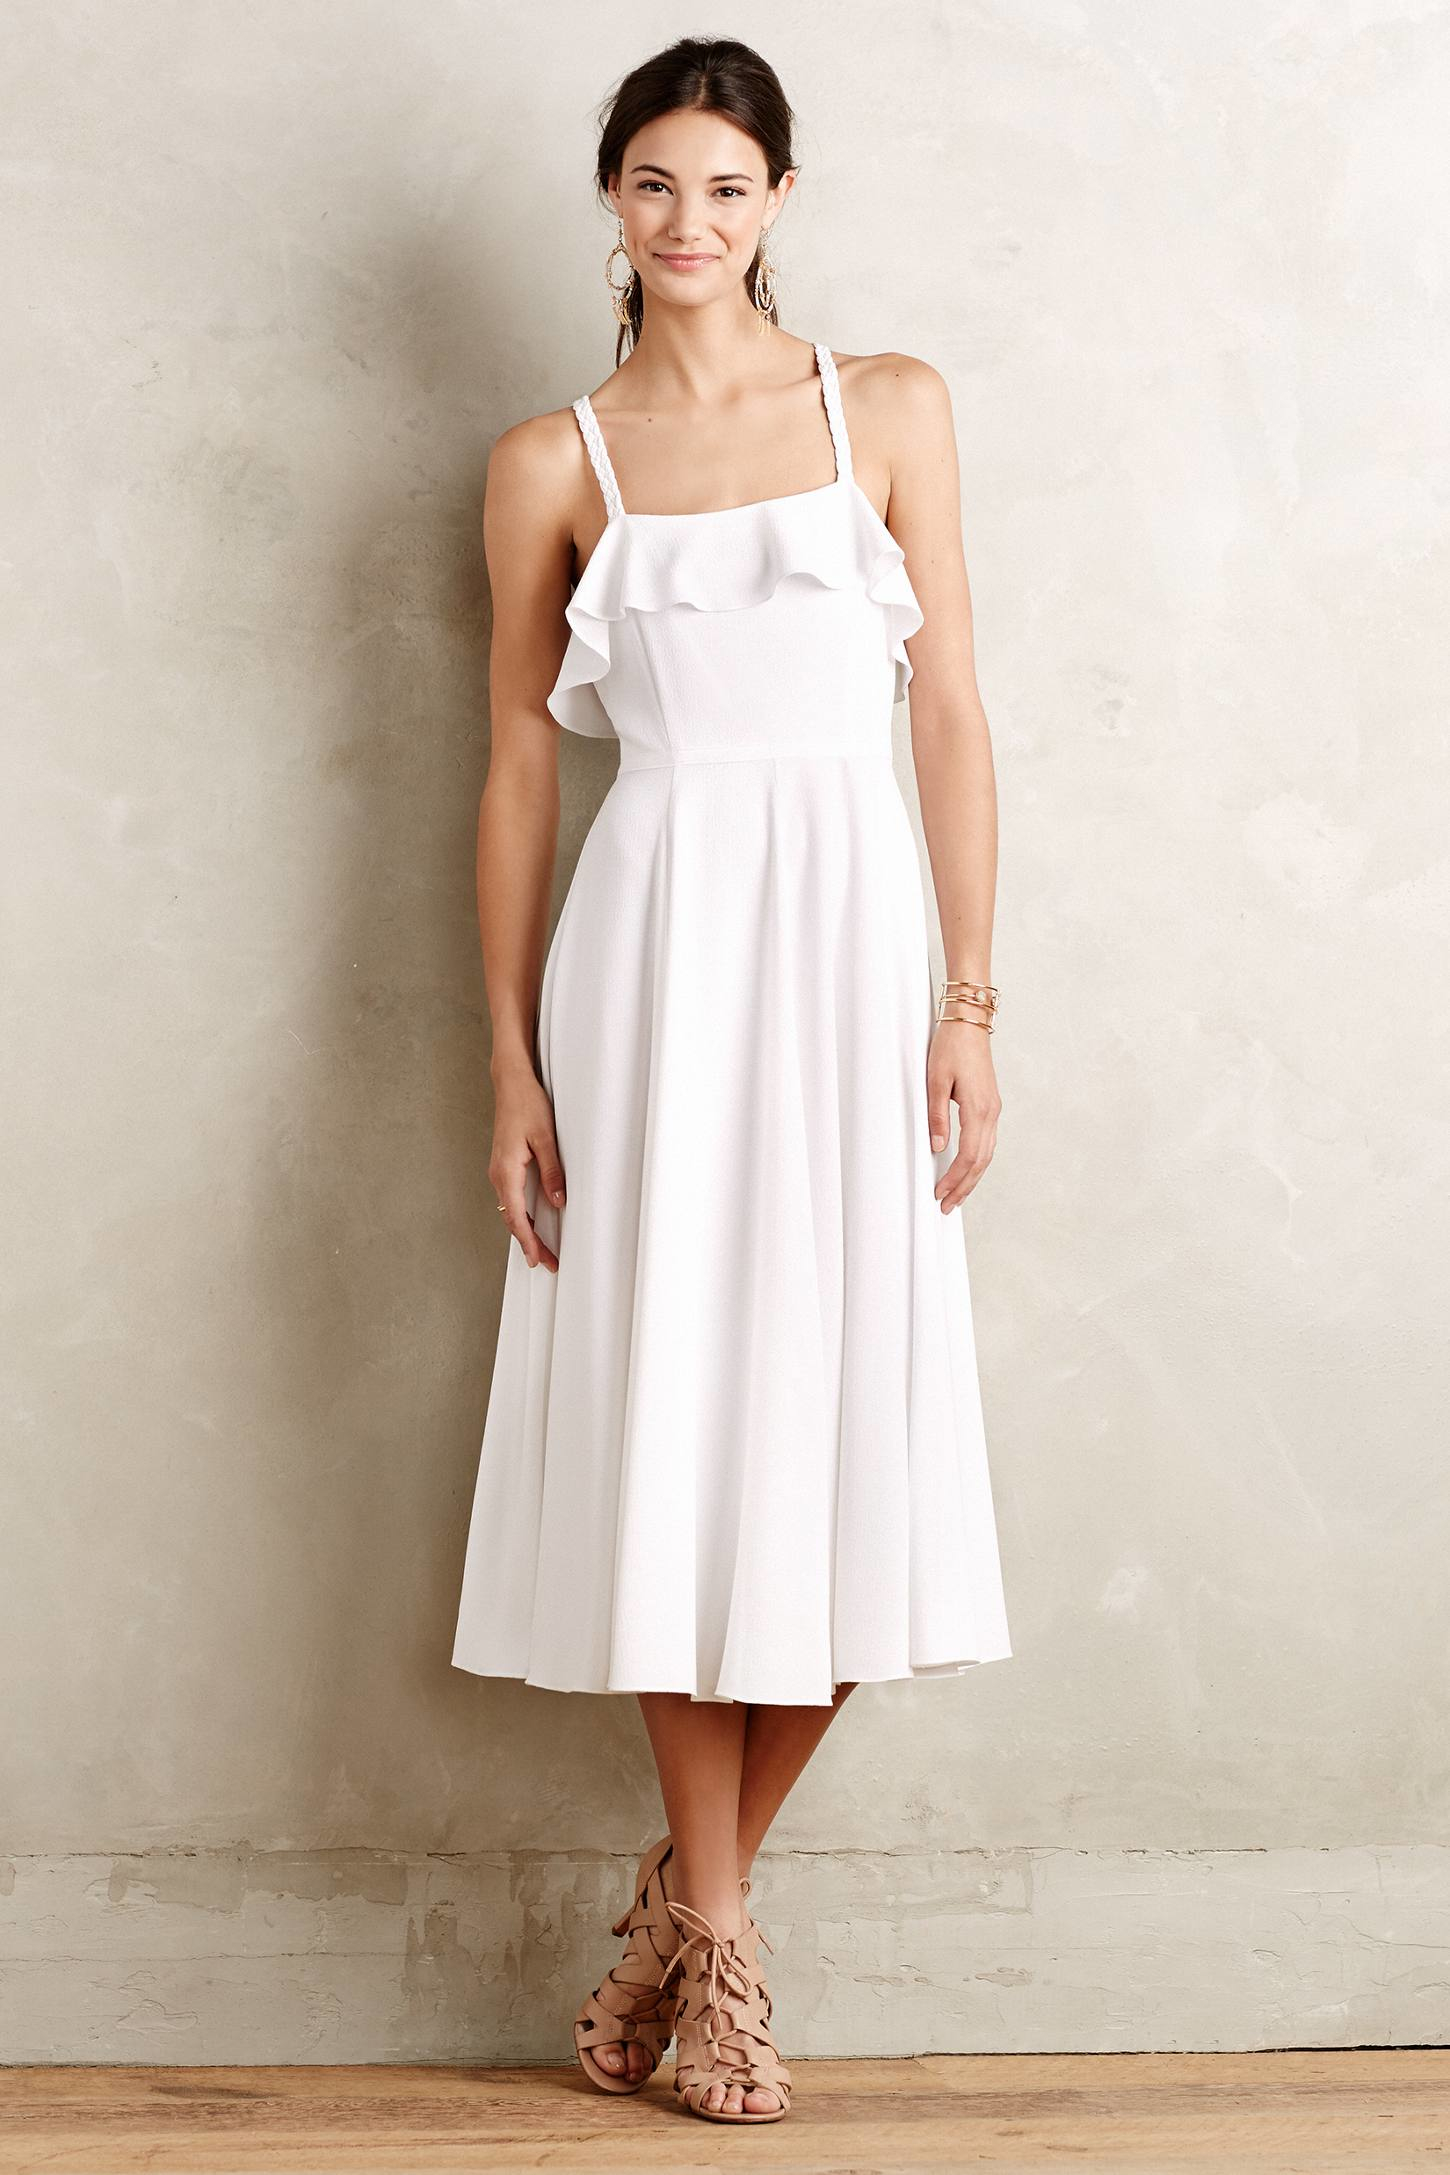 Shoshanna Damia Midi Dress in White | Lyst